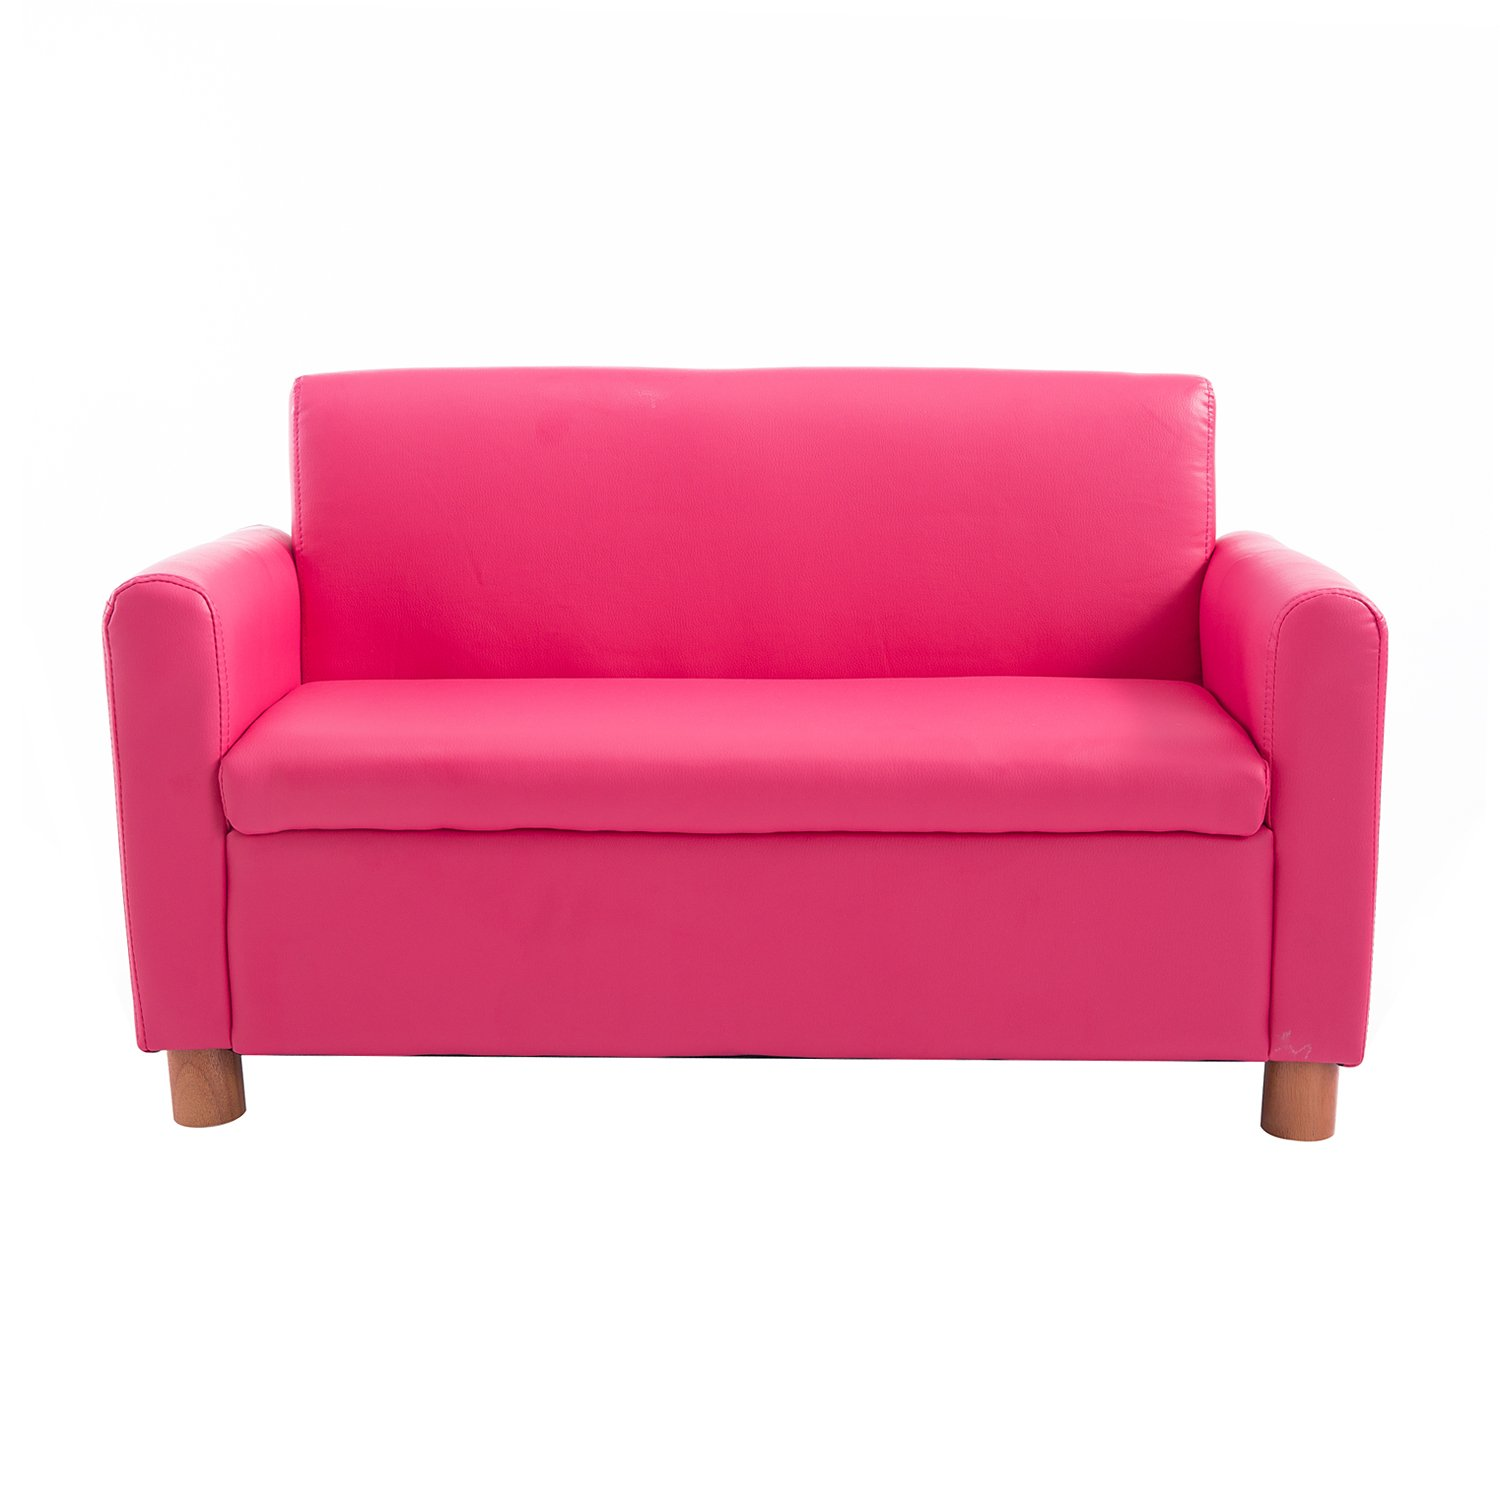 Homcom Pu Leather Kids Sofa Storage Armchair Relax Toddler Couch Children Game Seat Boys Girls Padded Chair Pink Two Seater Amazon Co Uk Kitchen Home